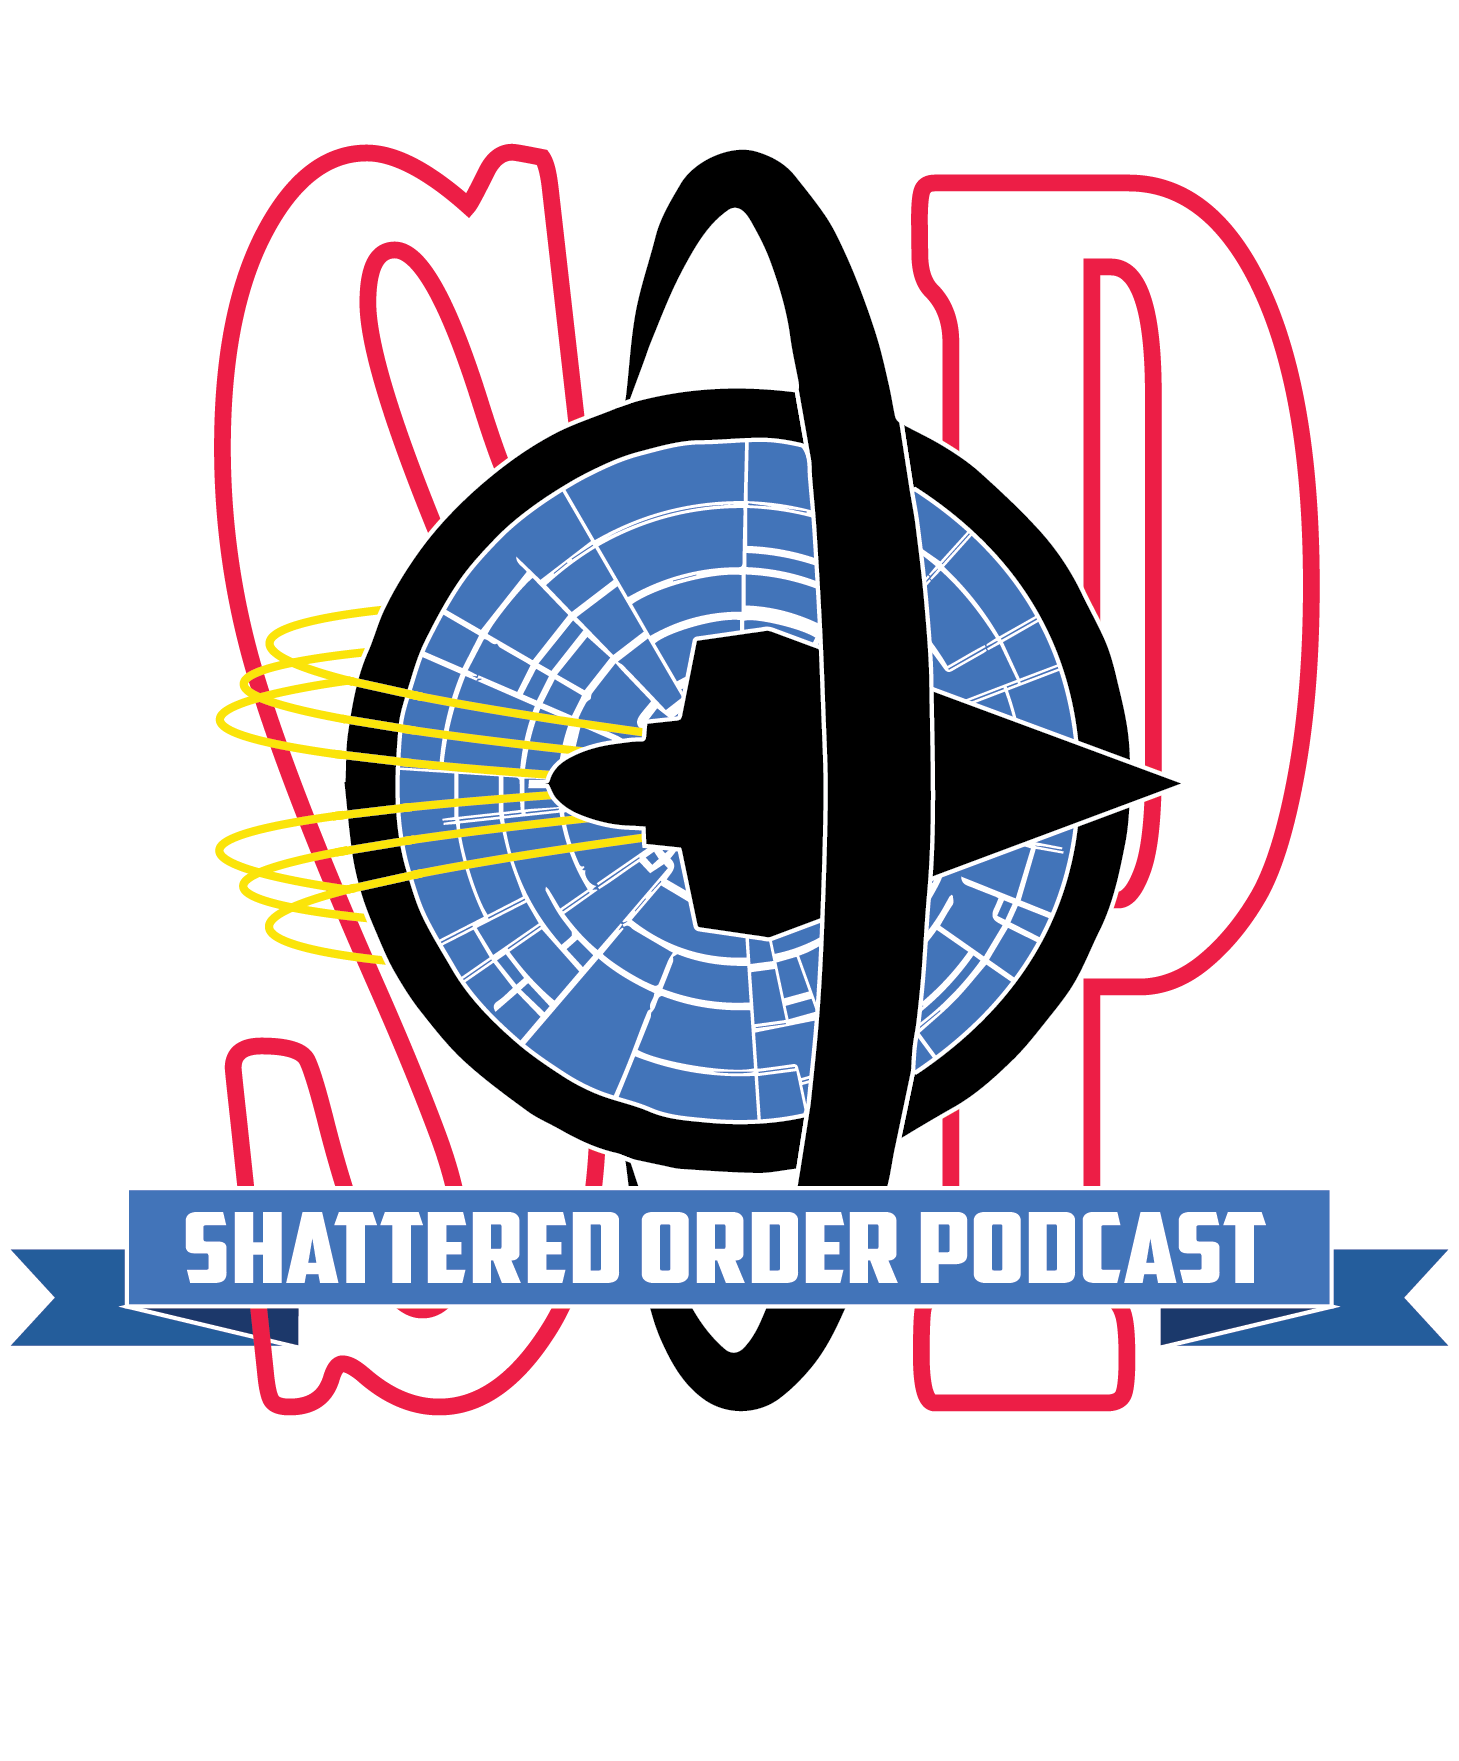 Episode 126: More KoTOR, a pleasant update, and what is a